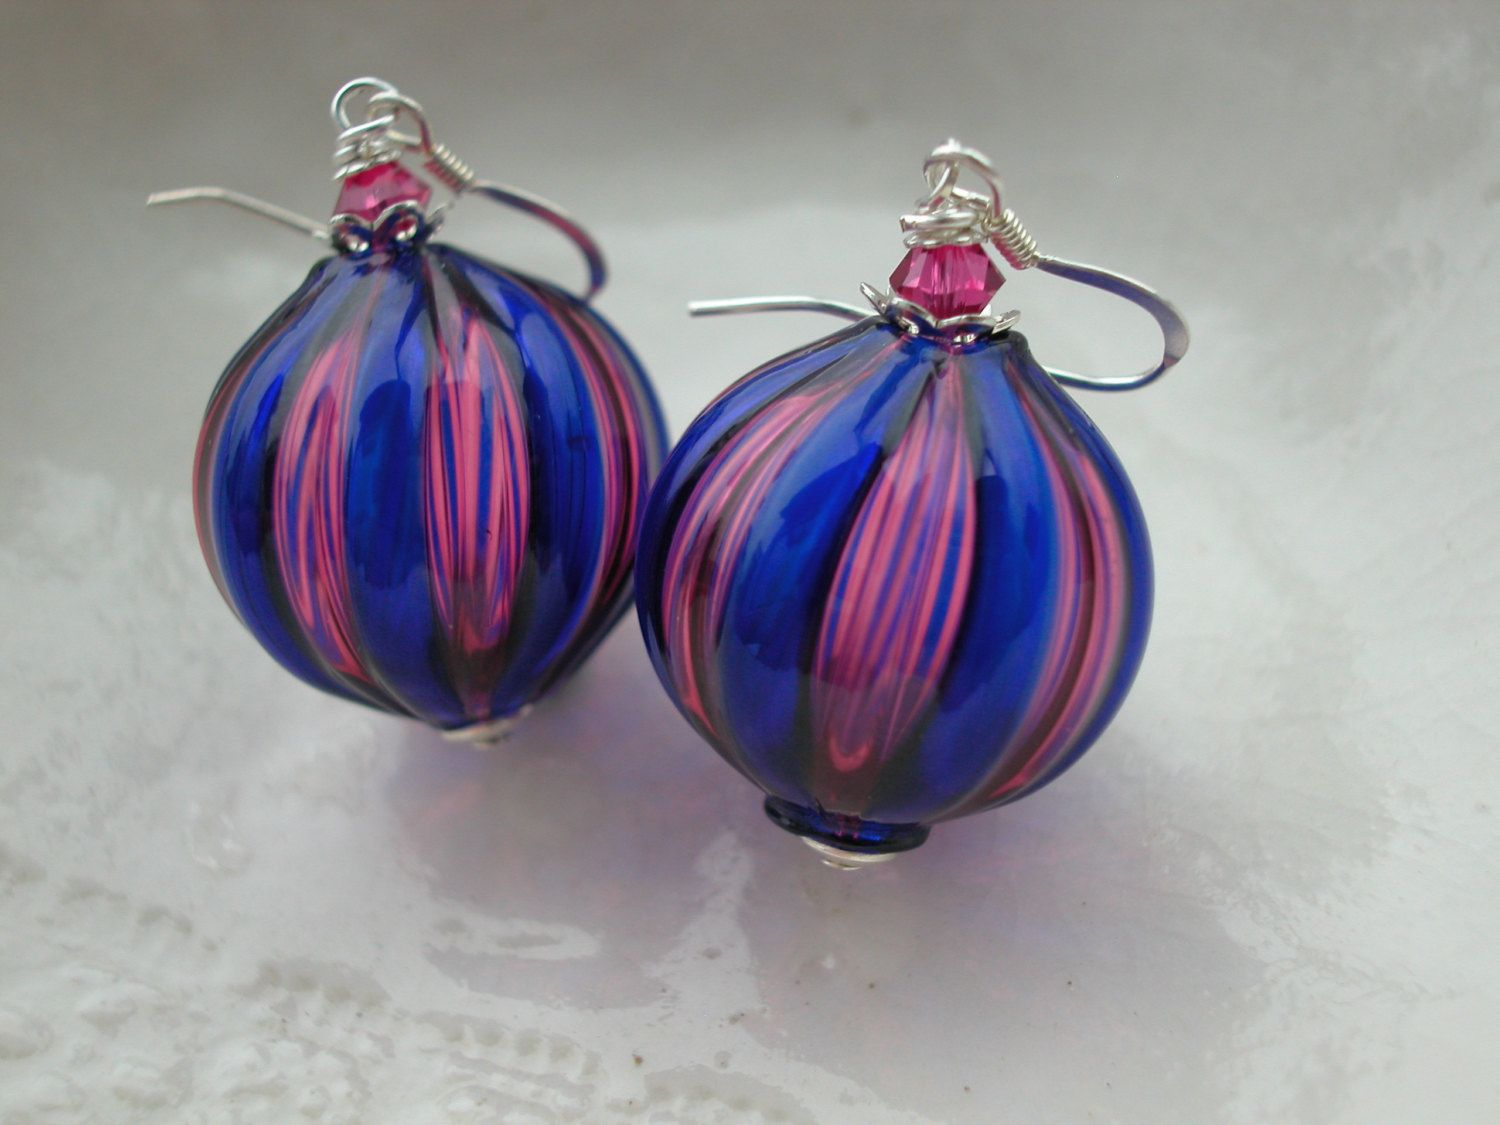 Venetian Murano Blown Glass Earrings by leeski on Etsy https://www.etsy.com/listing/64796023/venetian-murano-blown-glass-earrings